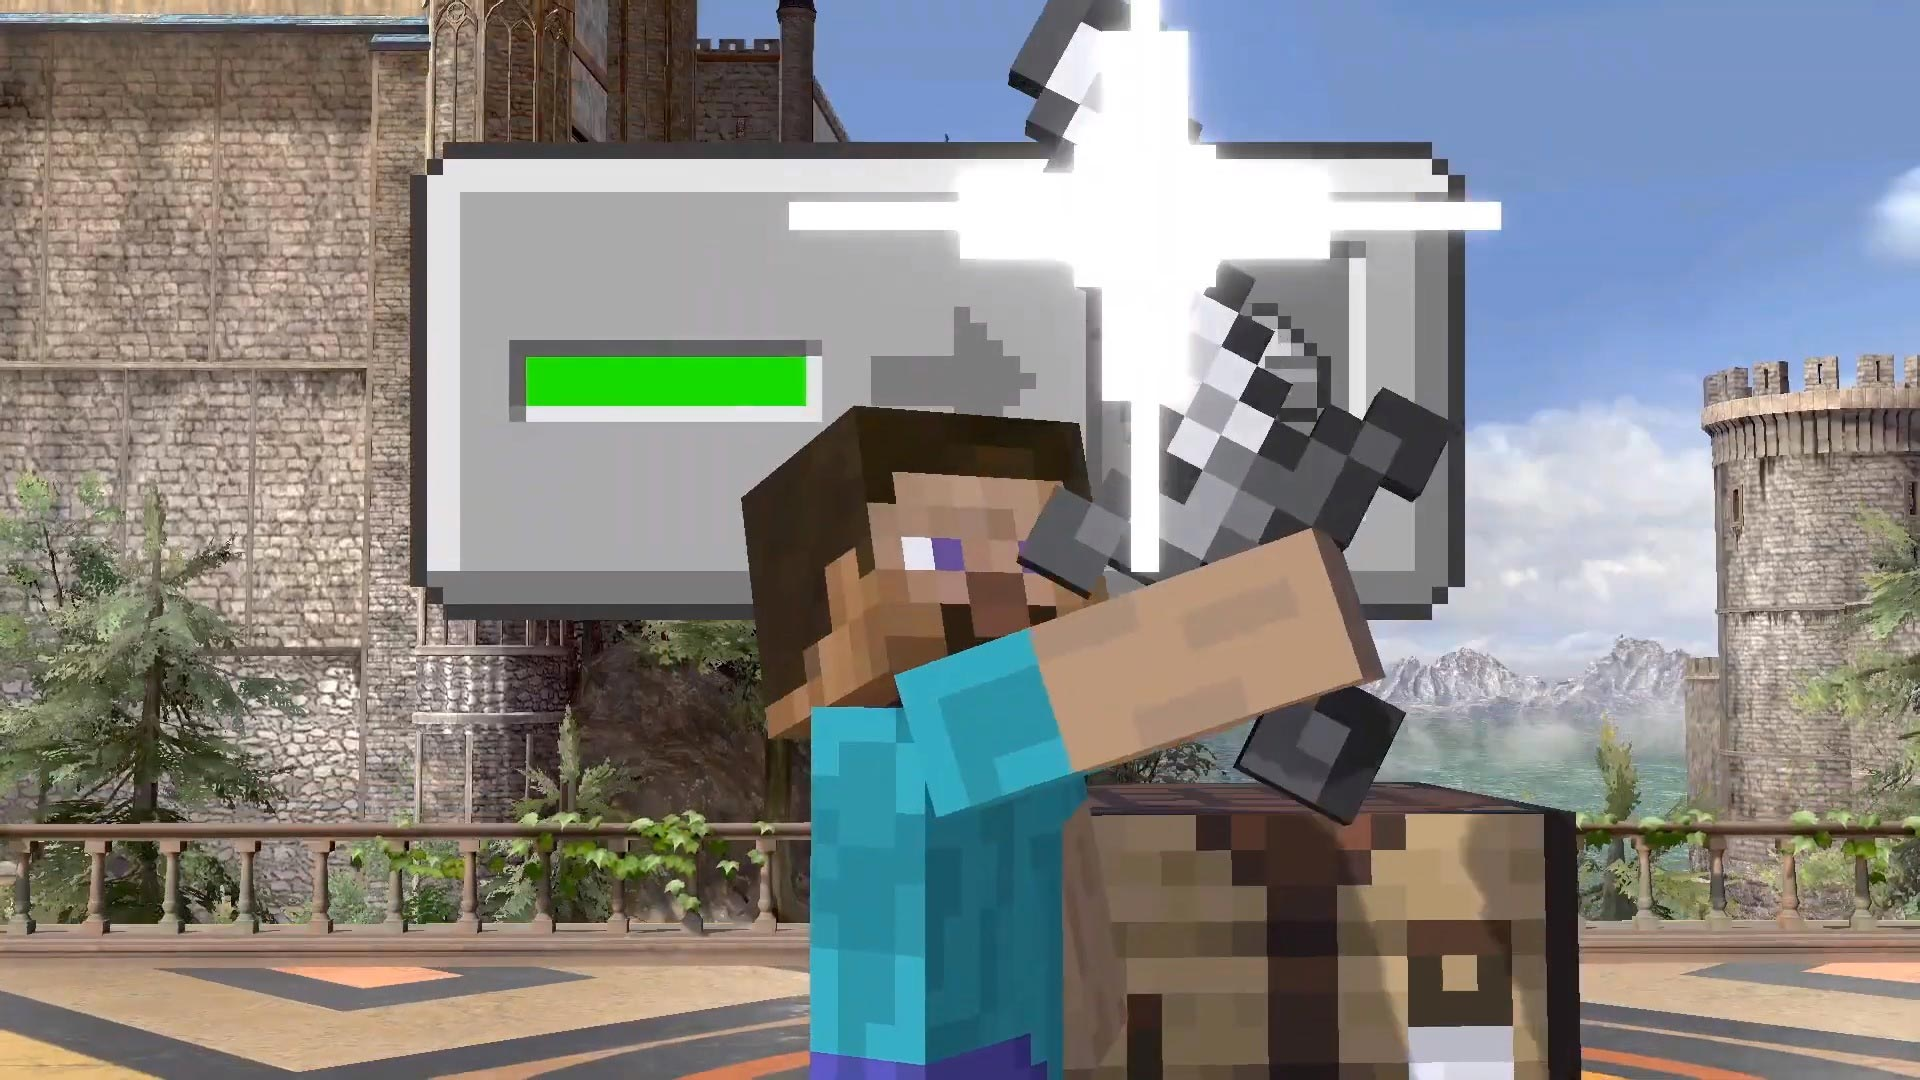 Steve from Minecraft in Super Smash Bros. Ultimate 6 out of 9 image gallery